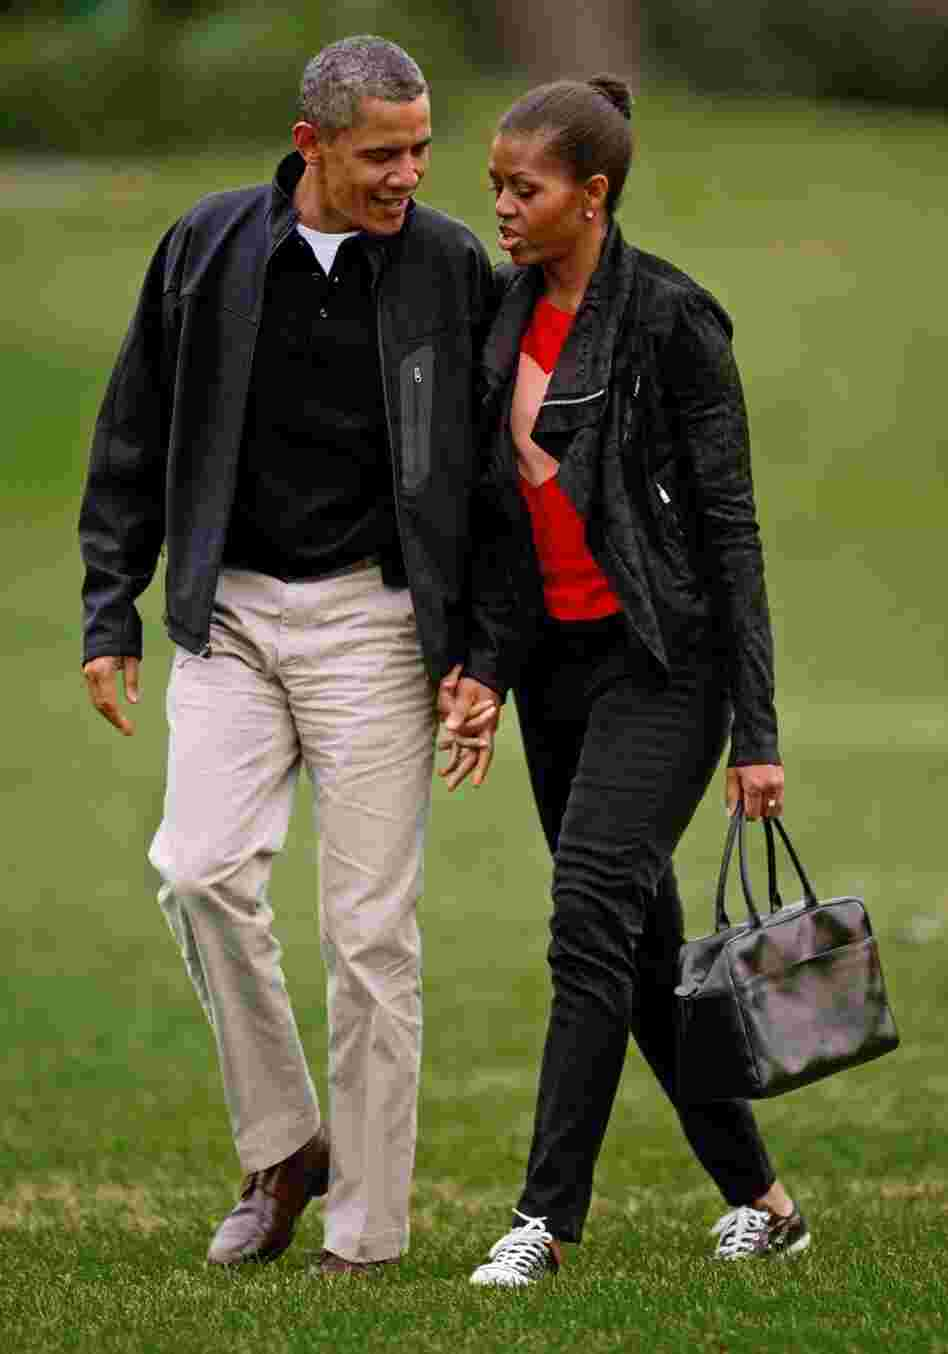 Michelle Obama sports casual skinny black pants and a matching jacket.